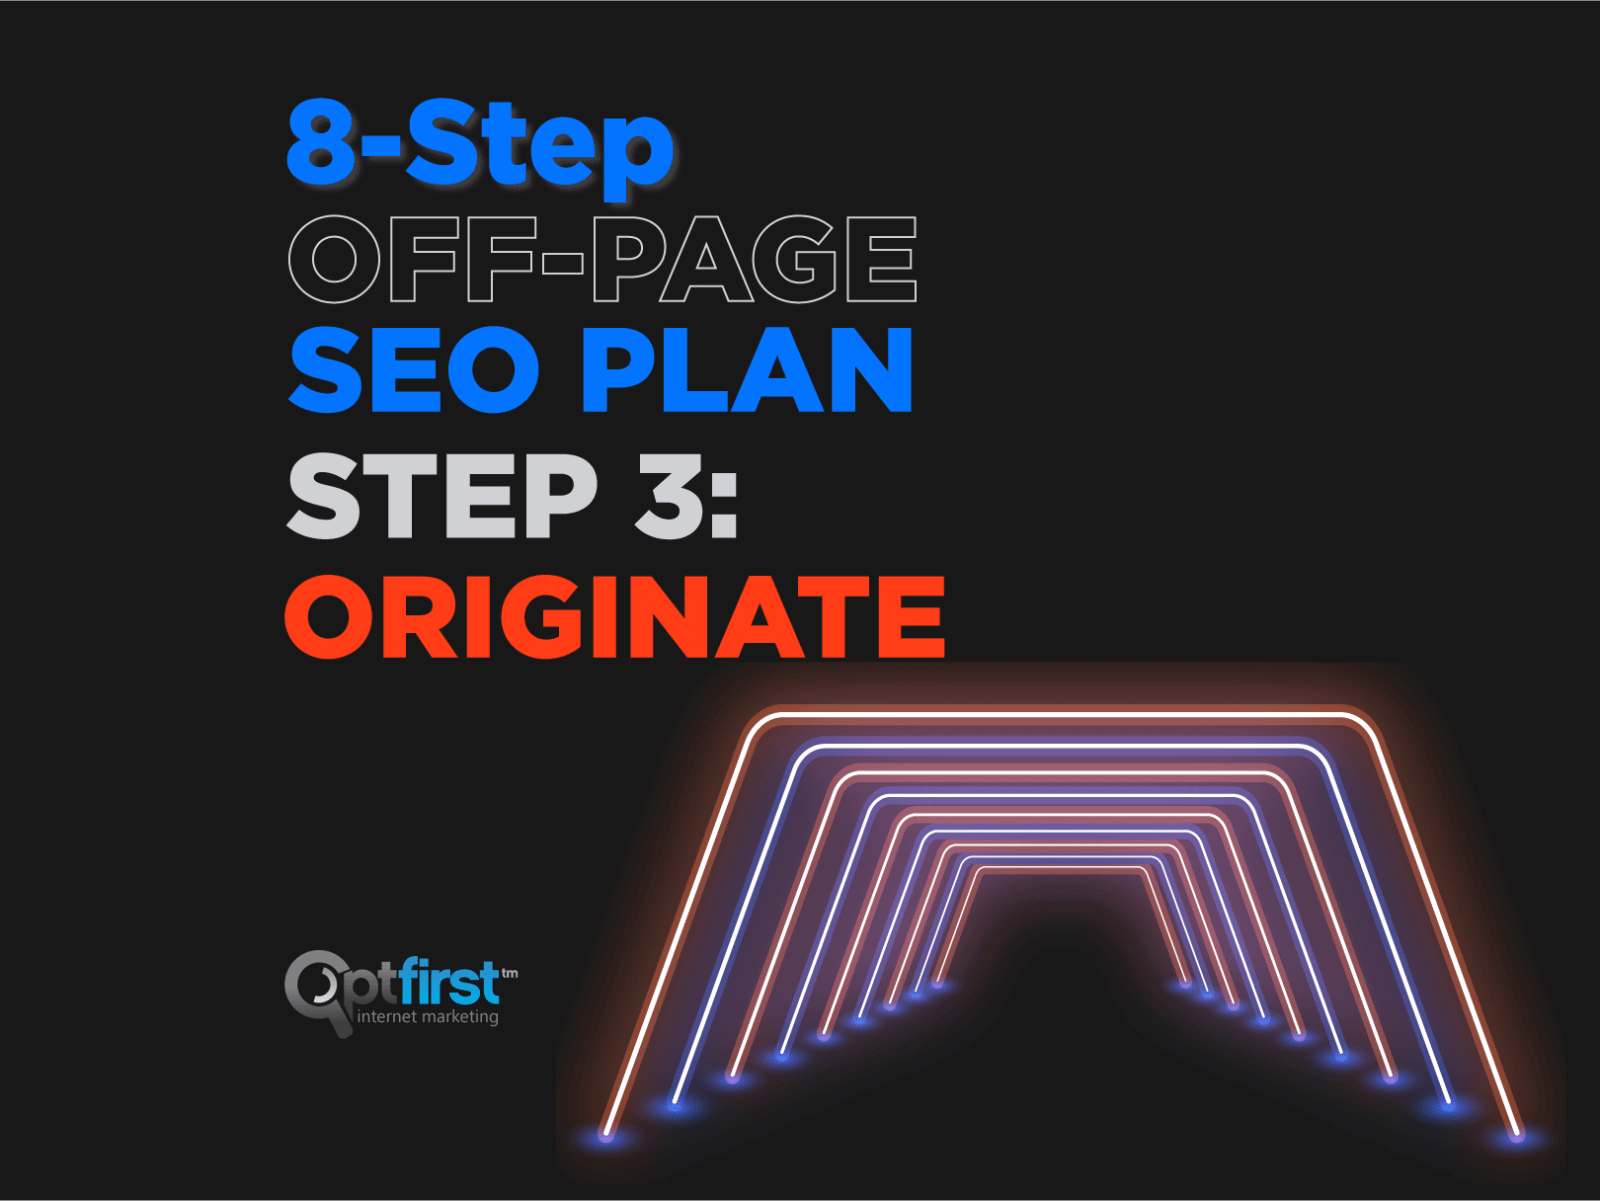 8-Step Off-Page SEO Plan, Step 3: Originate